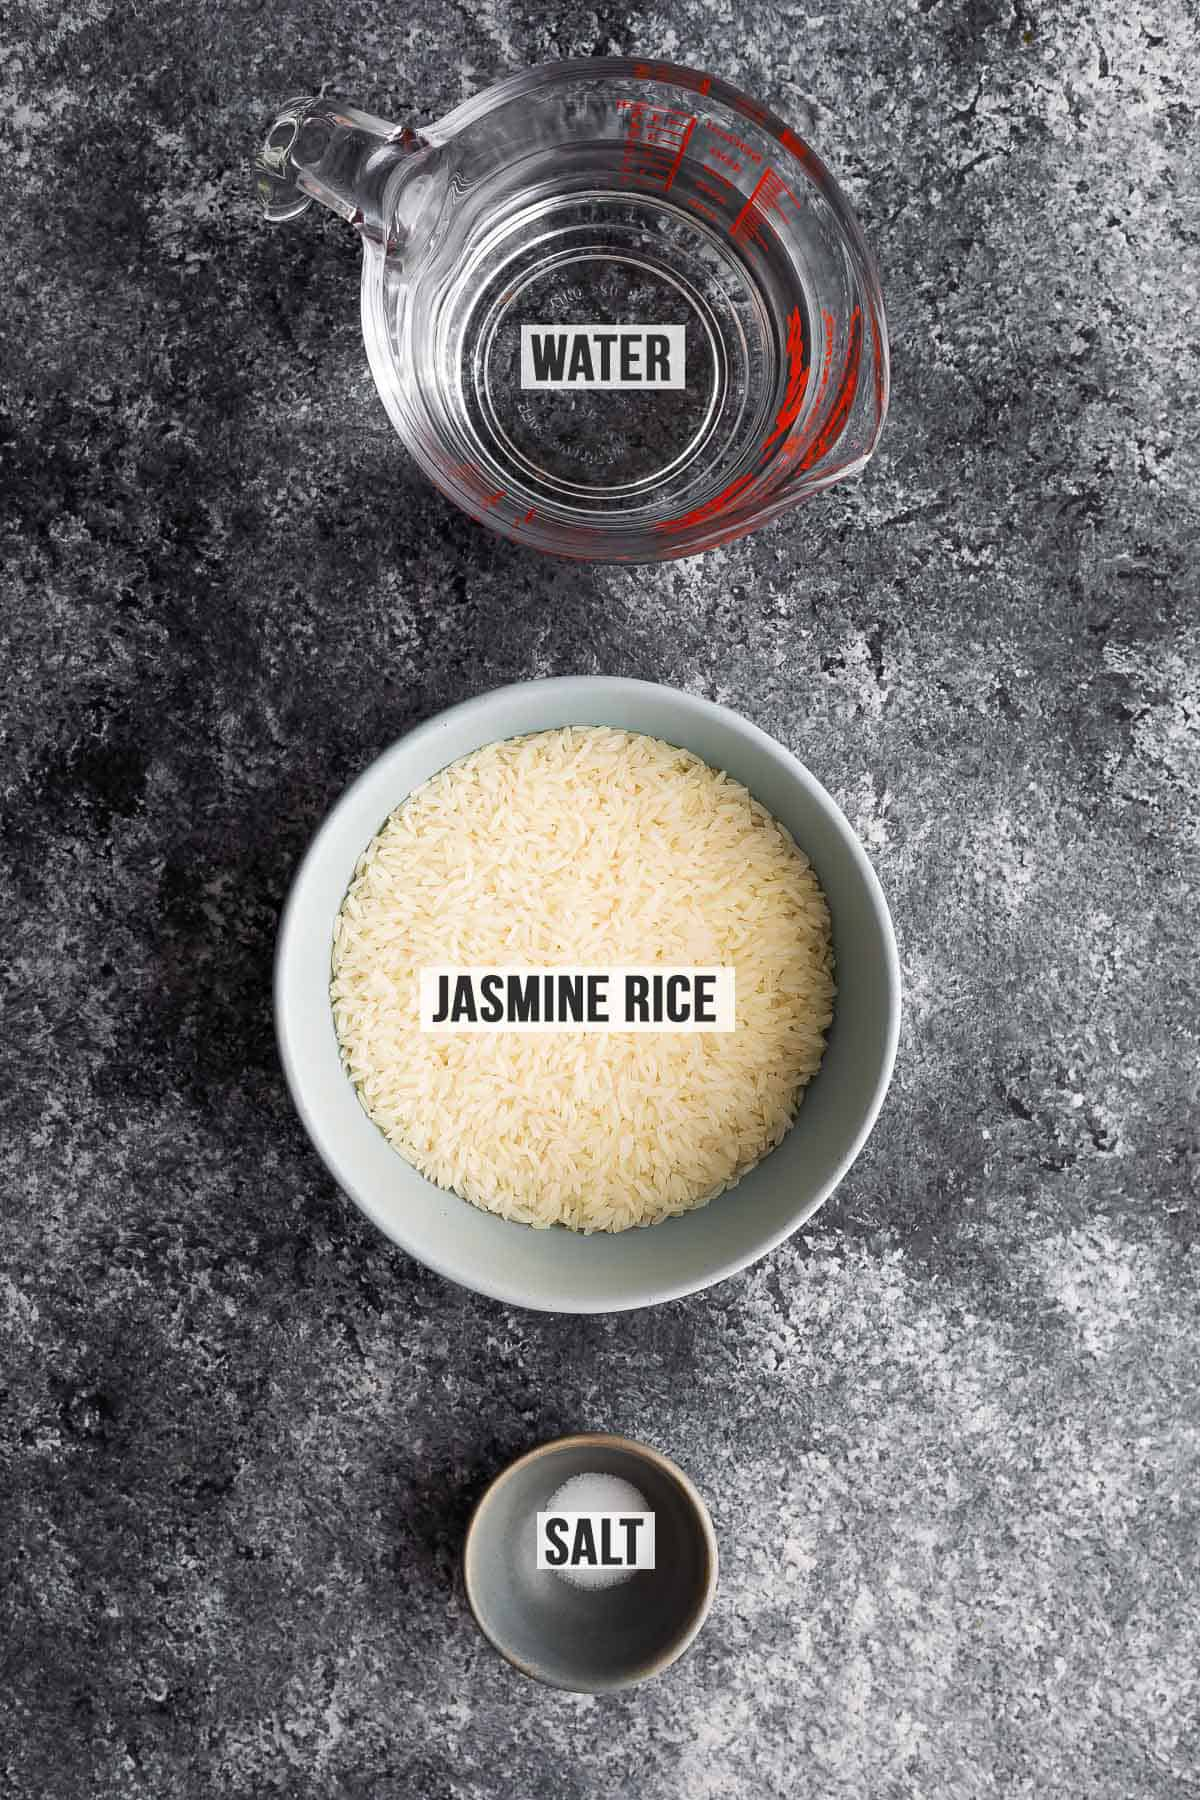 Overhead view of the ingredients needed to cook jasmine rice in a finished saucepan